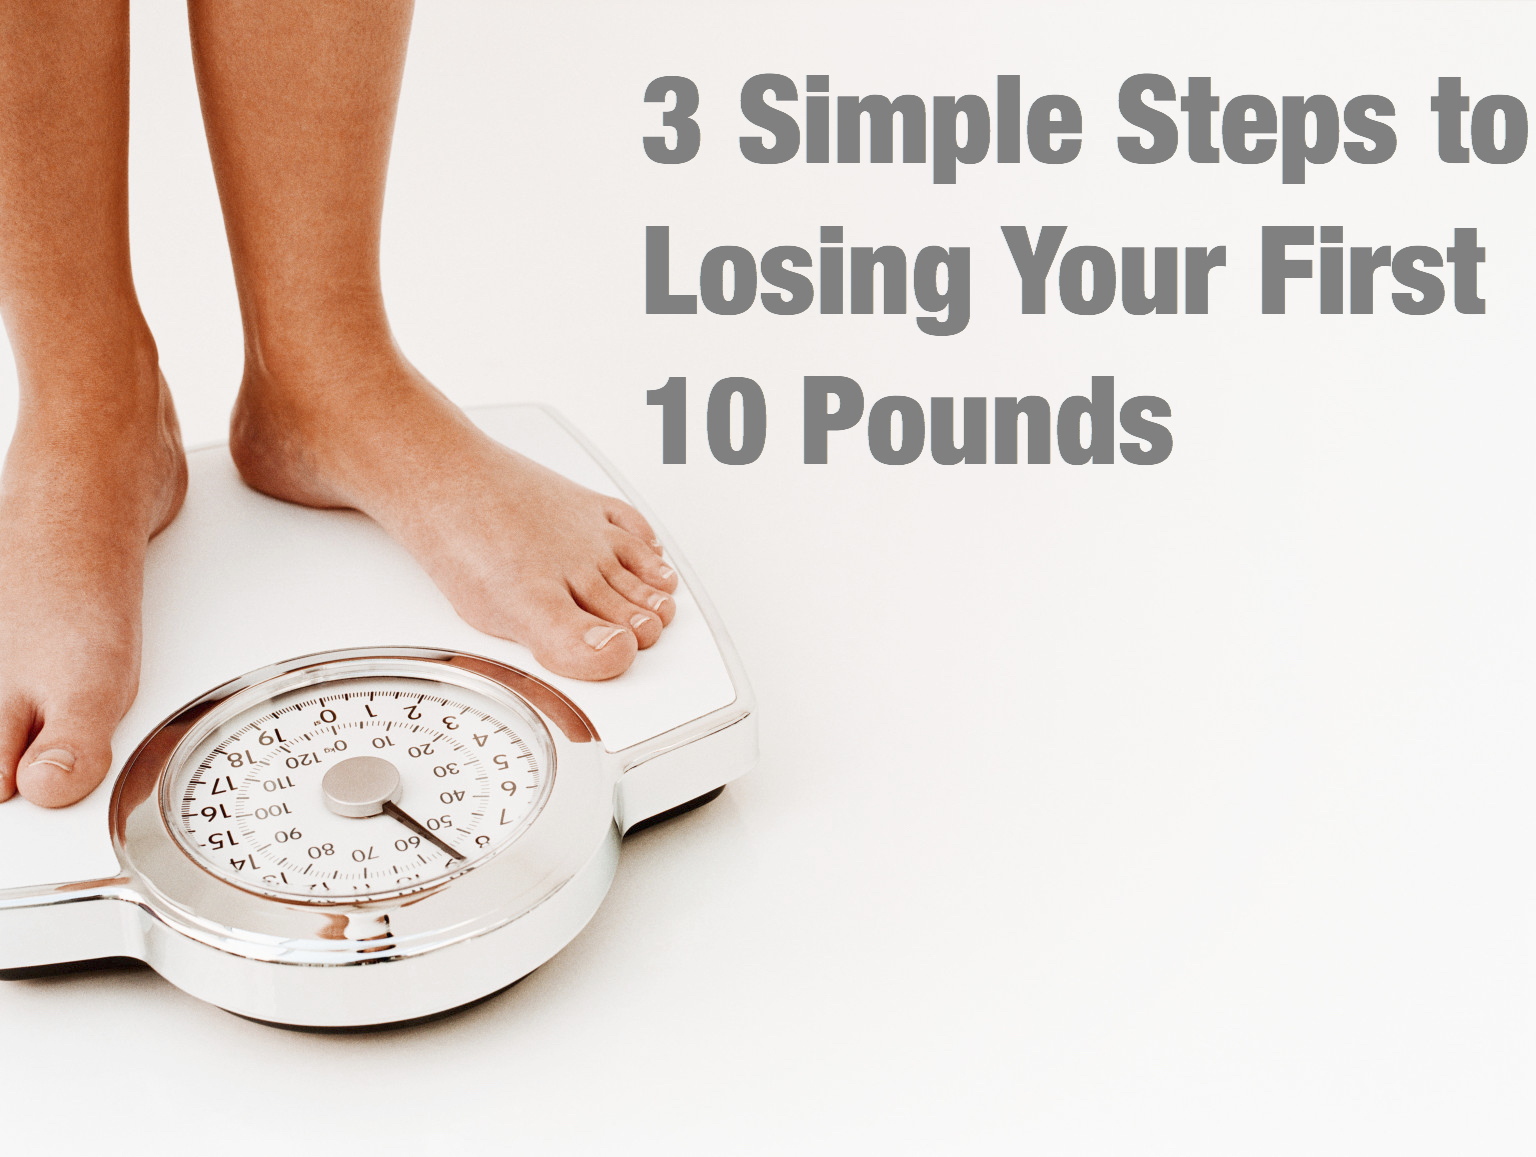 3 Simple Steps to Losing Your First 10 Pounds